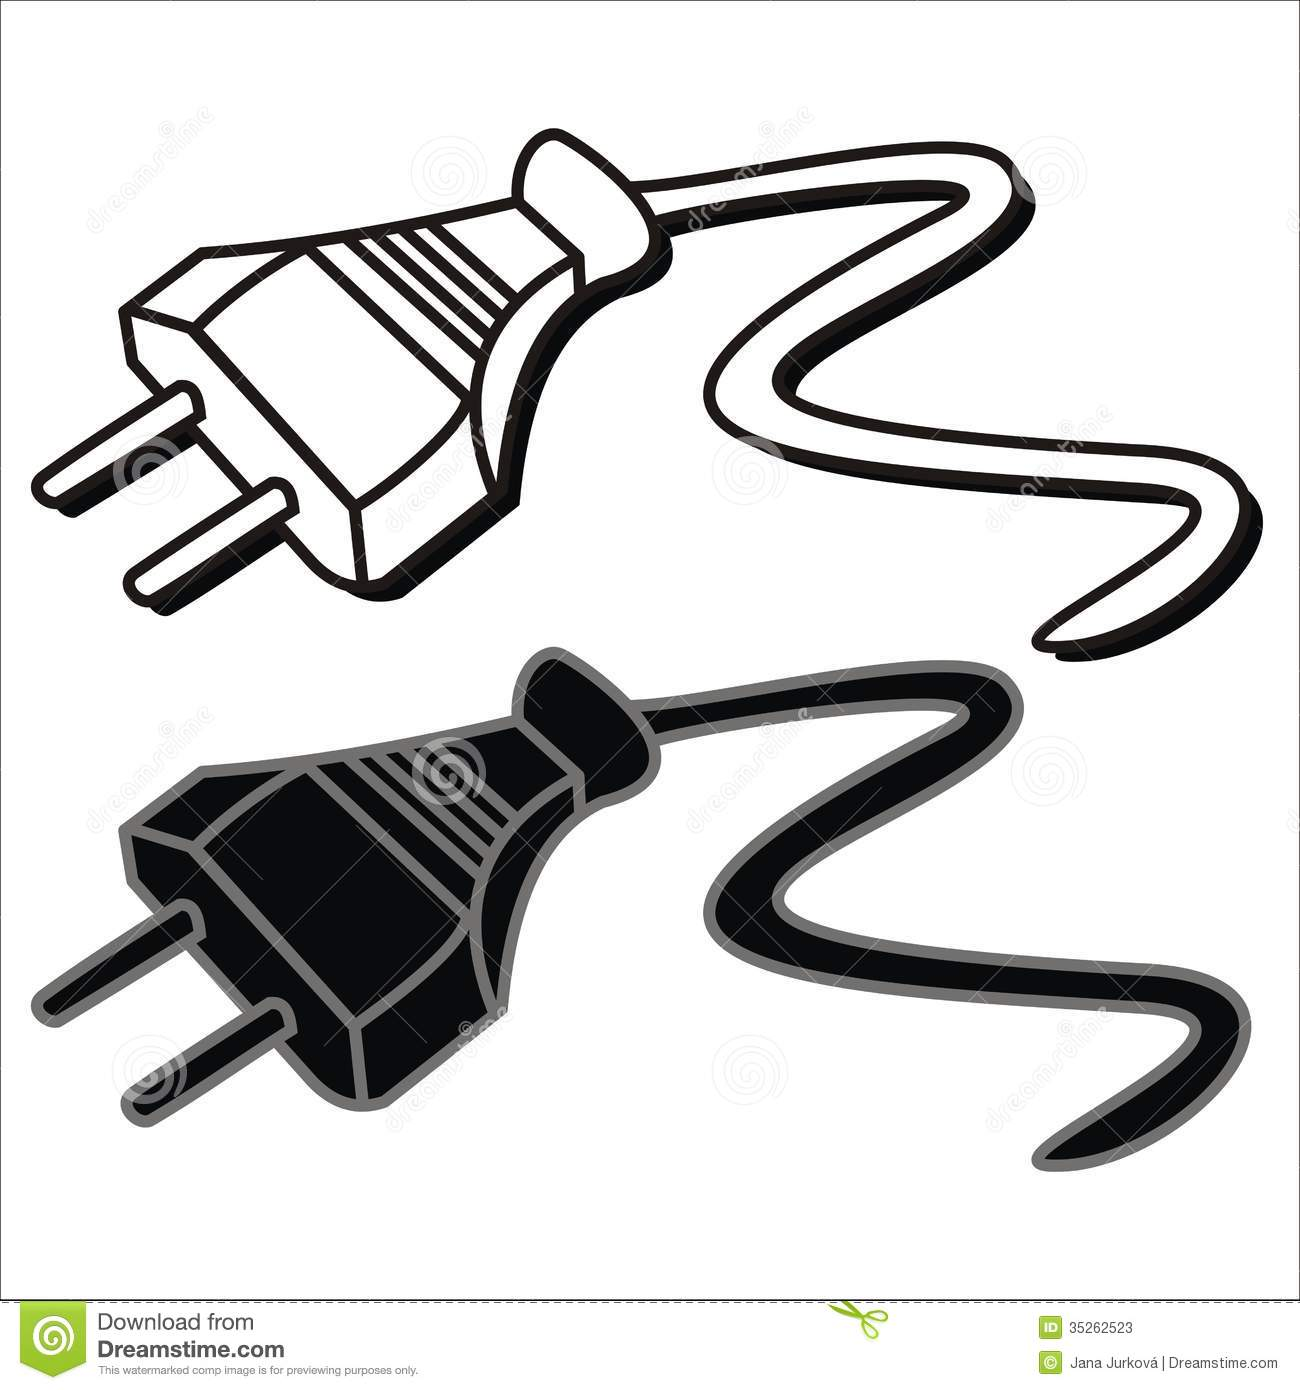 Cable Wire And Clip Art.